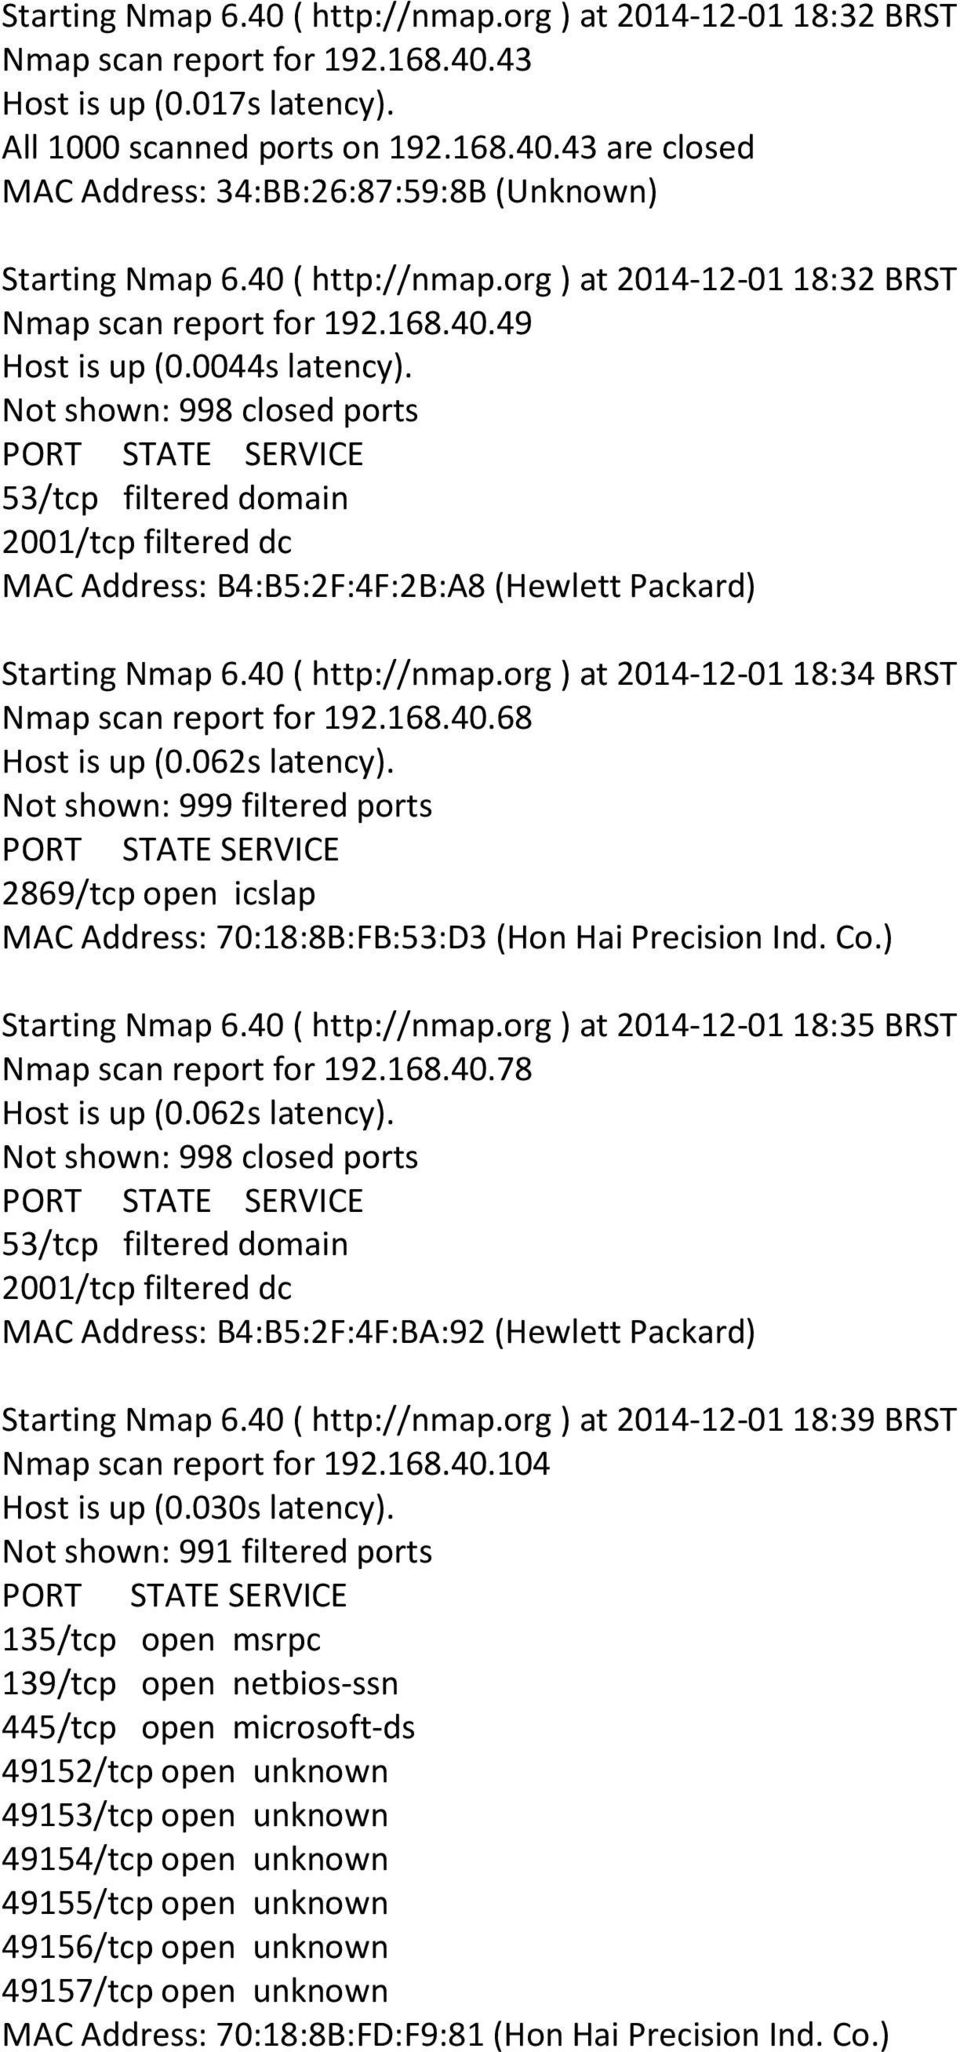 168.40.68 Host is up (0.062s latency). Not shown: 999 filtered ports MAC Address: 70:18:8B:FB:53:D3 (Hon Hai Precision Ind. Co.) Starting Nmap 6.40 ( http://nmap.